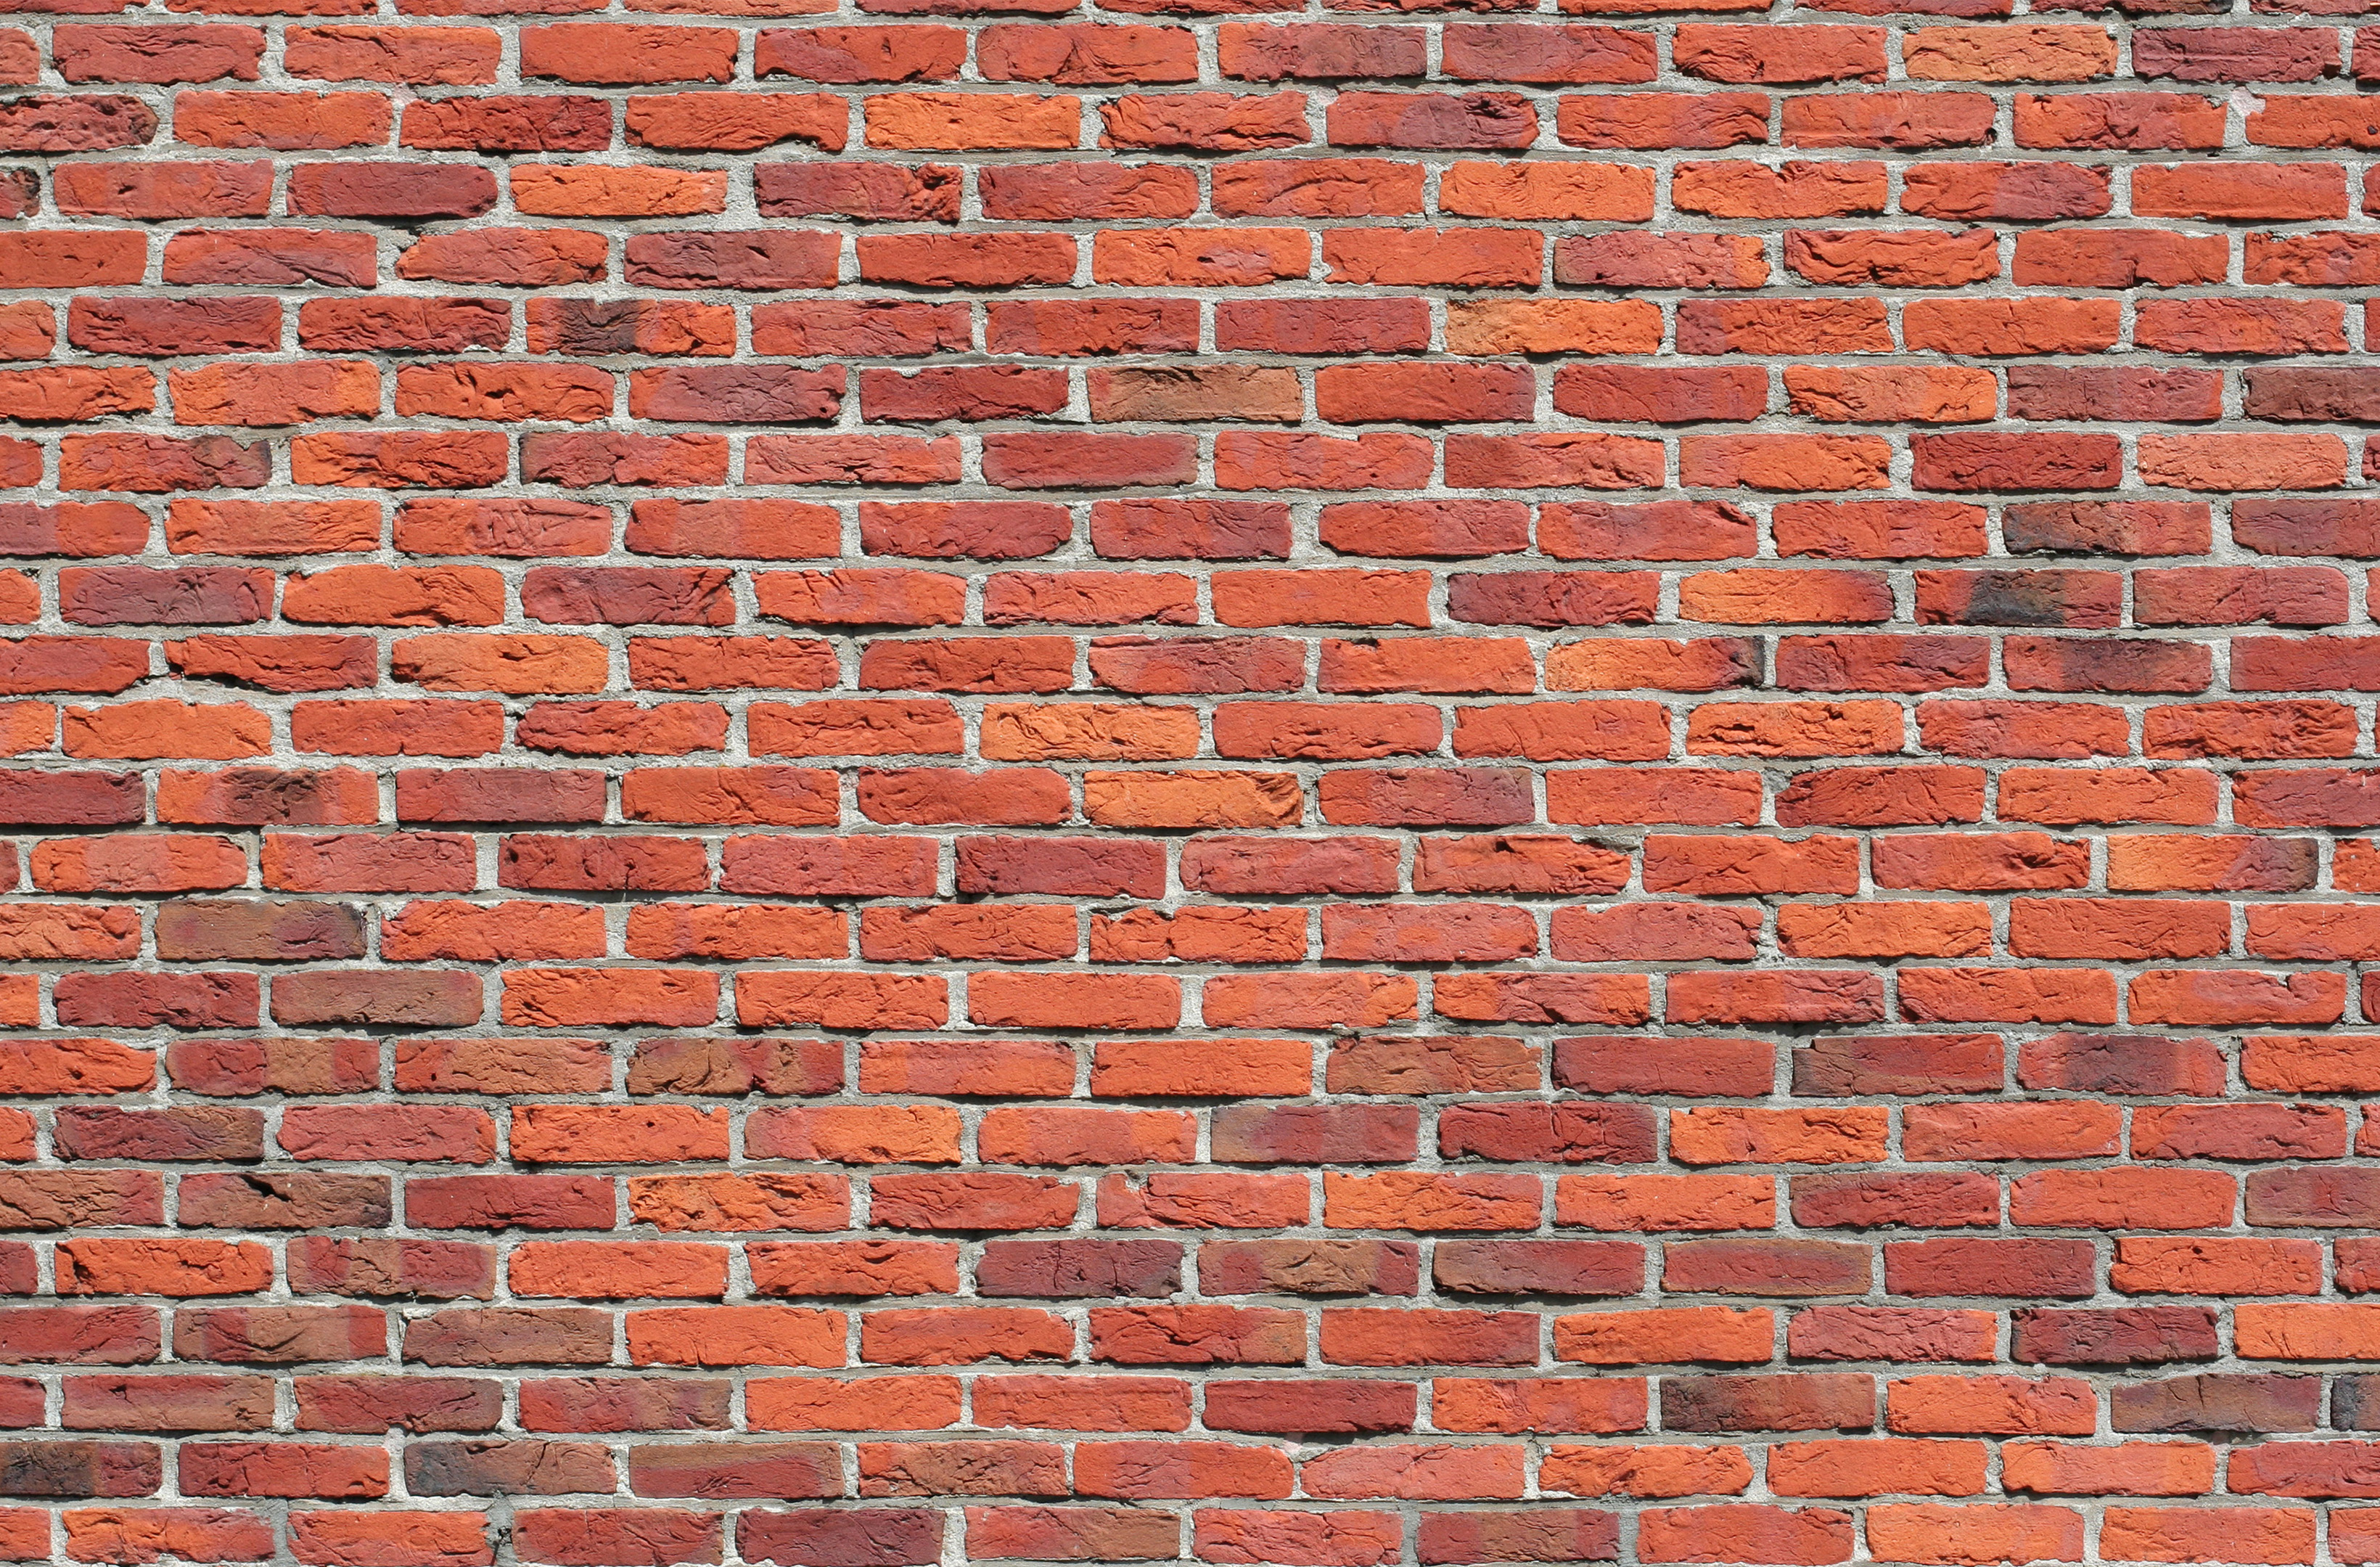 Brick Wall Background Design : Brick wall texture download photo image bricks